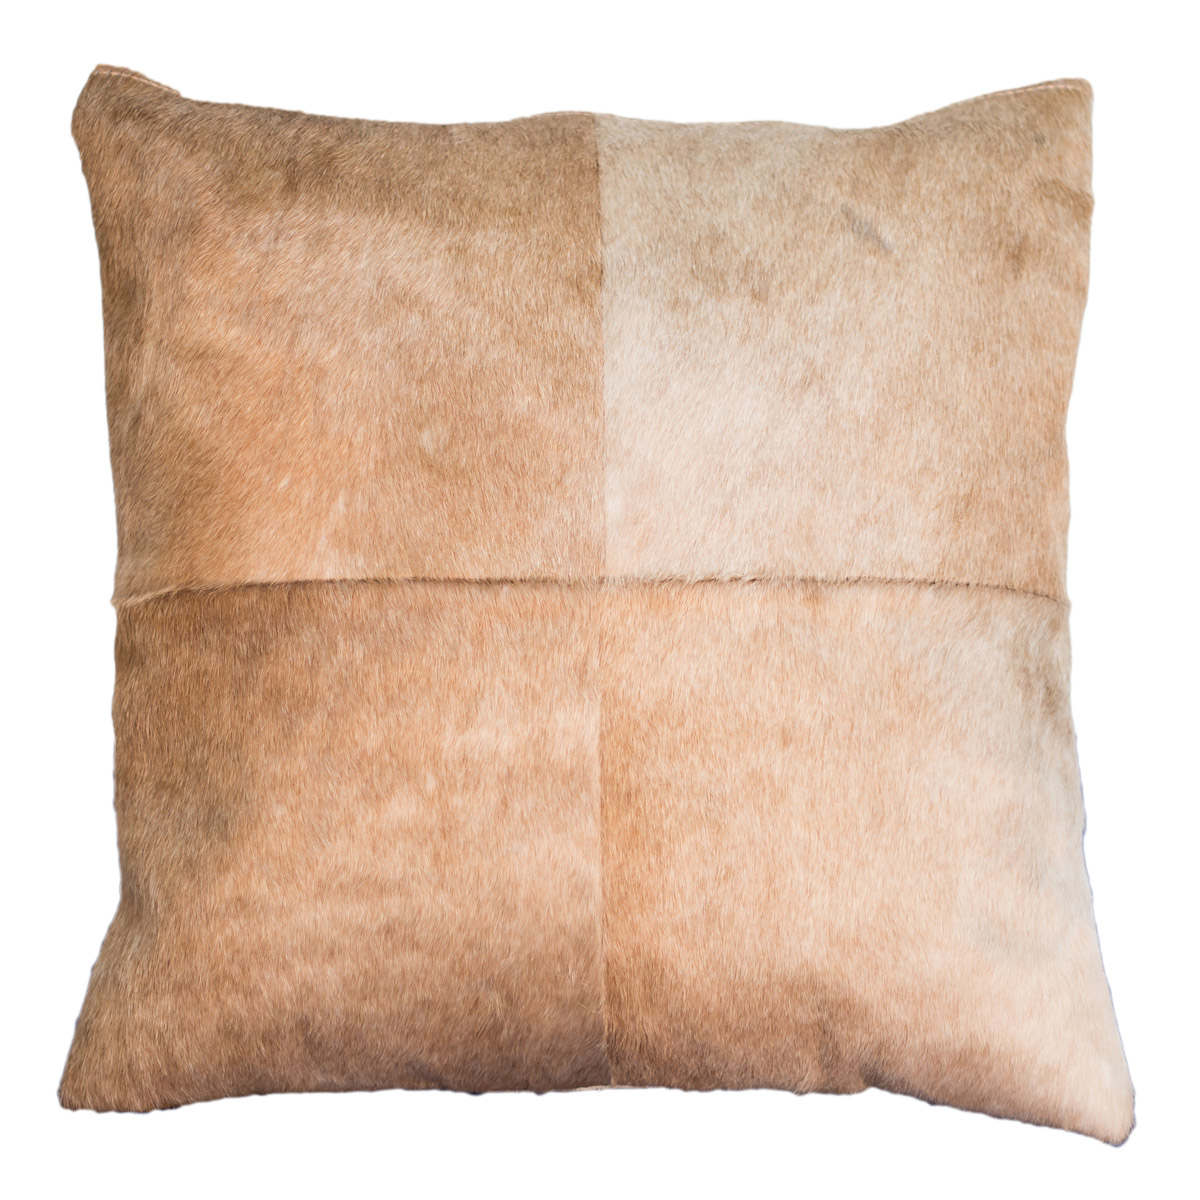 Light Brown Cowhide Pillow